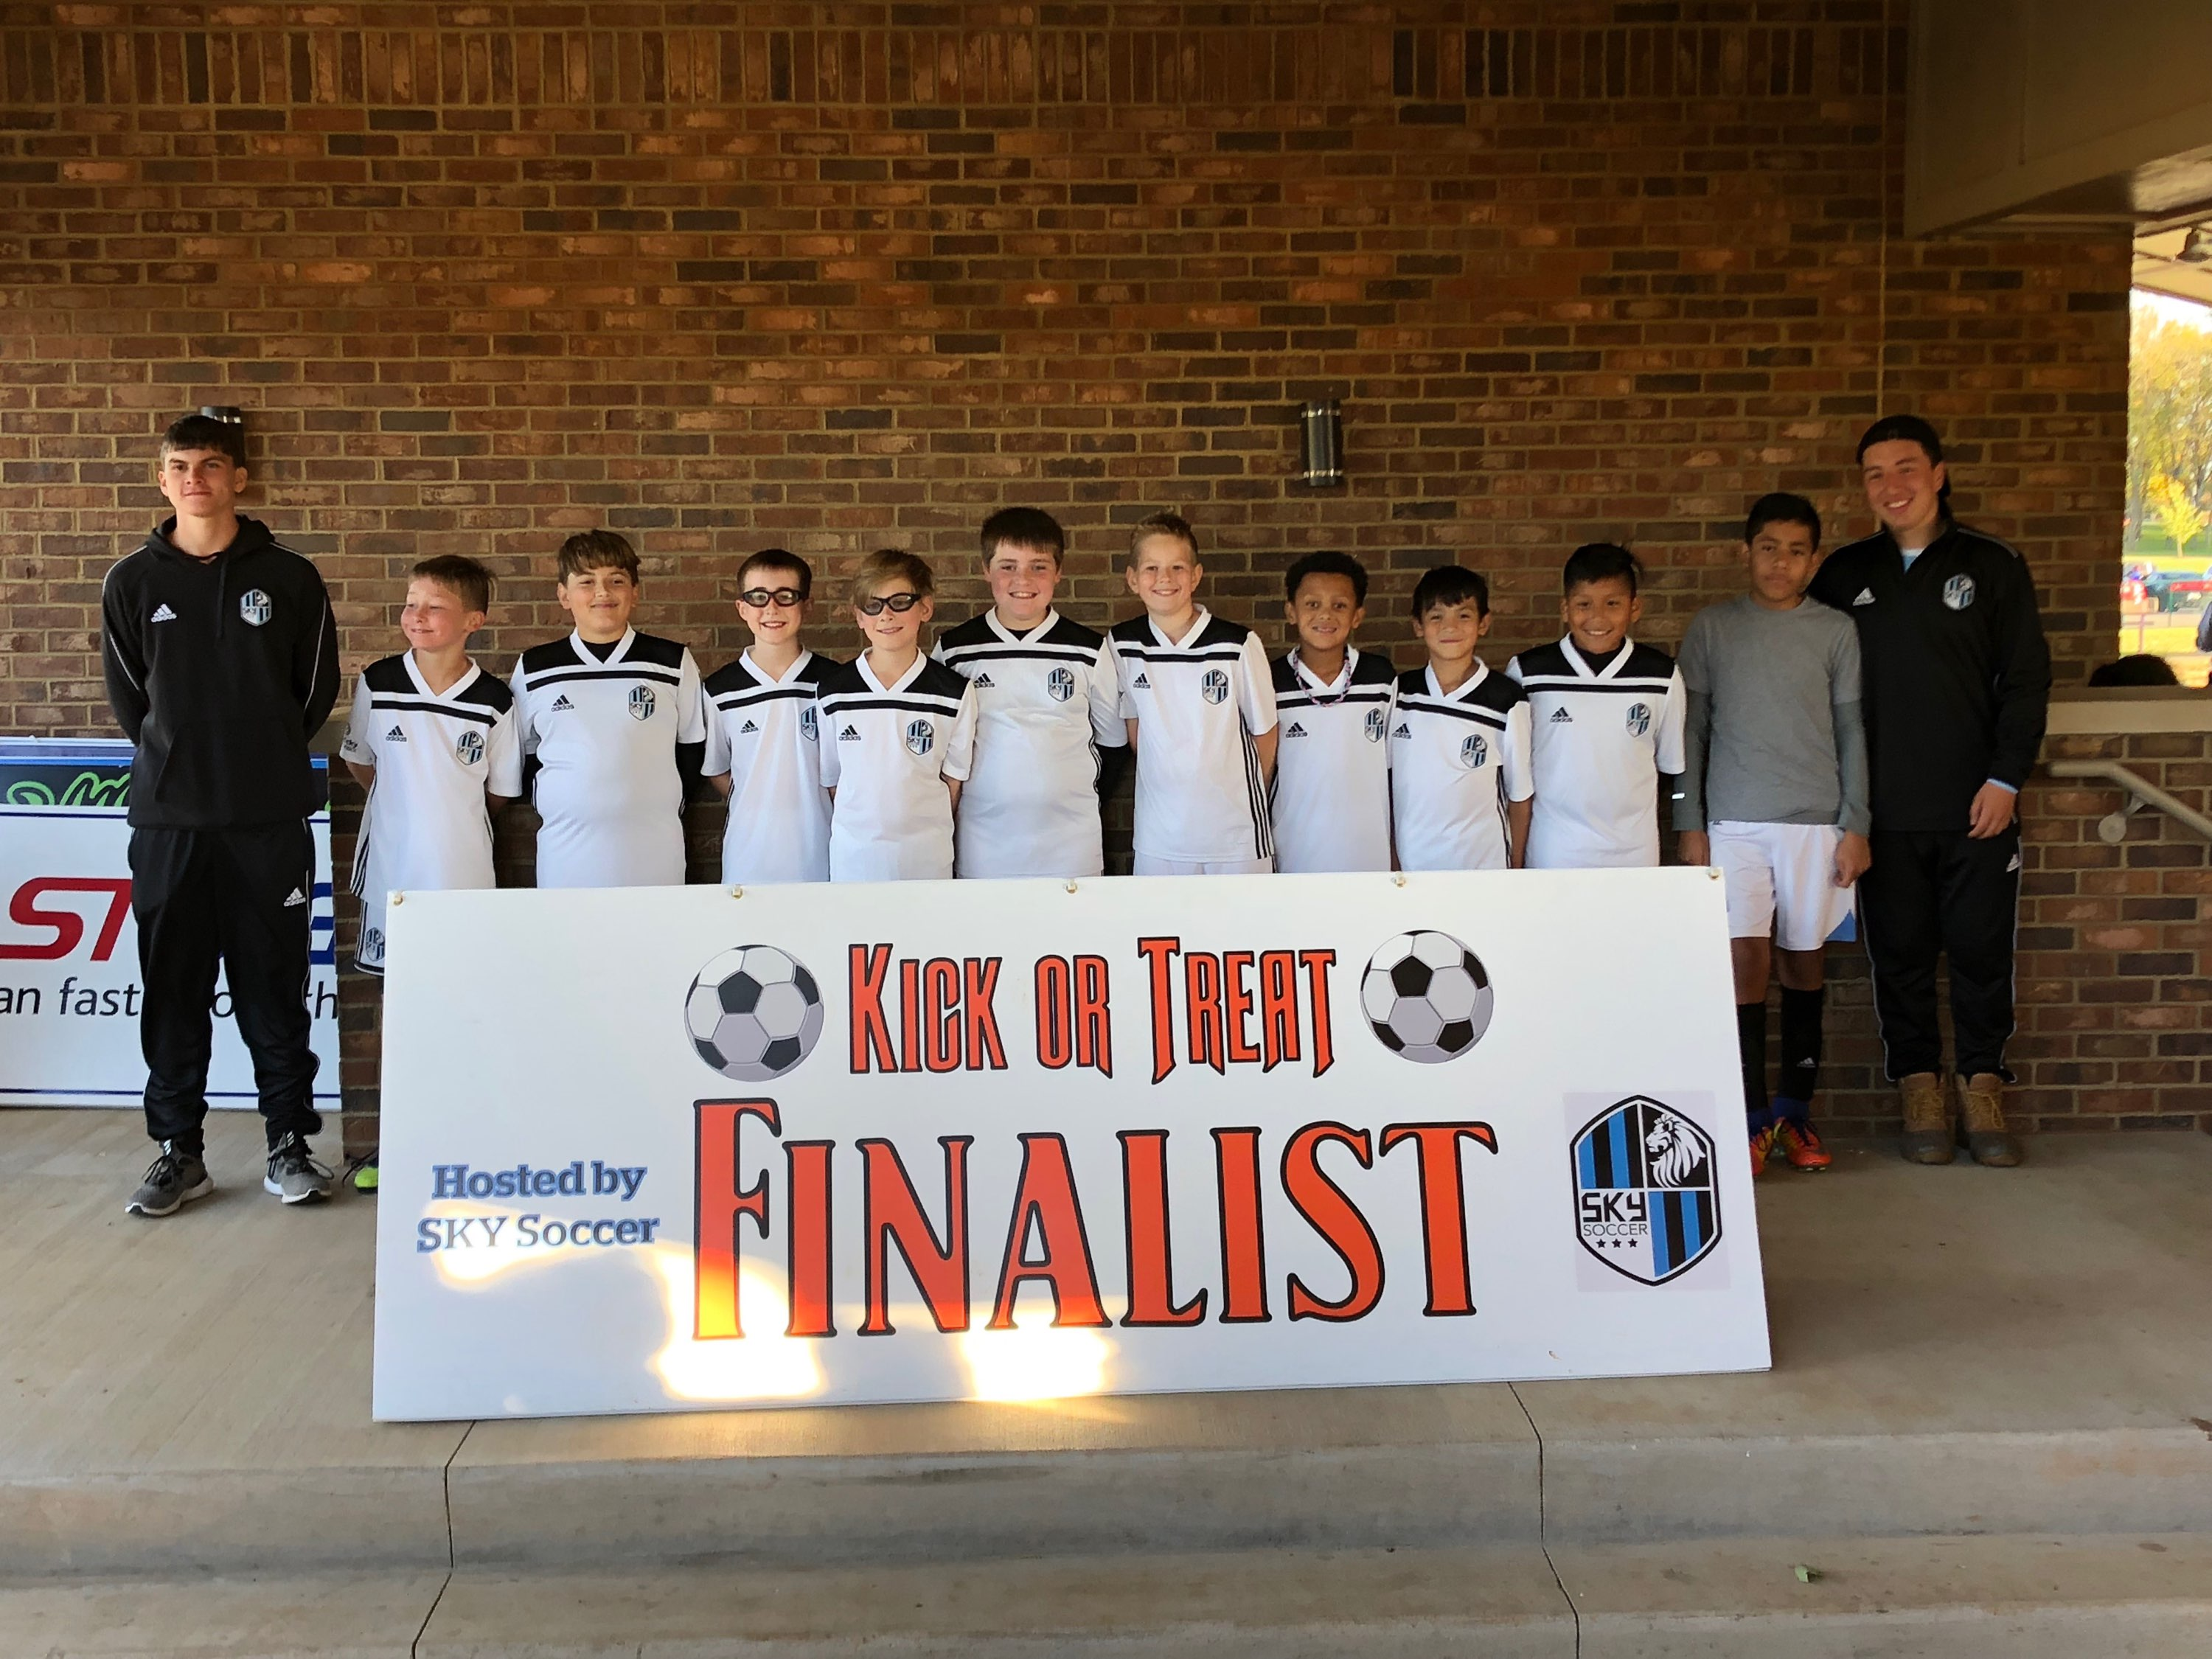 2007 Boys Blue - Finalist - Kick or Treat - Bowling Green, KY